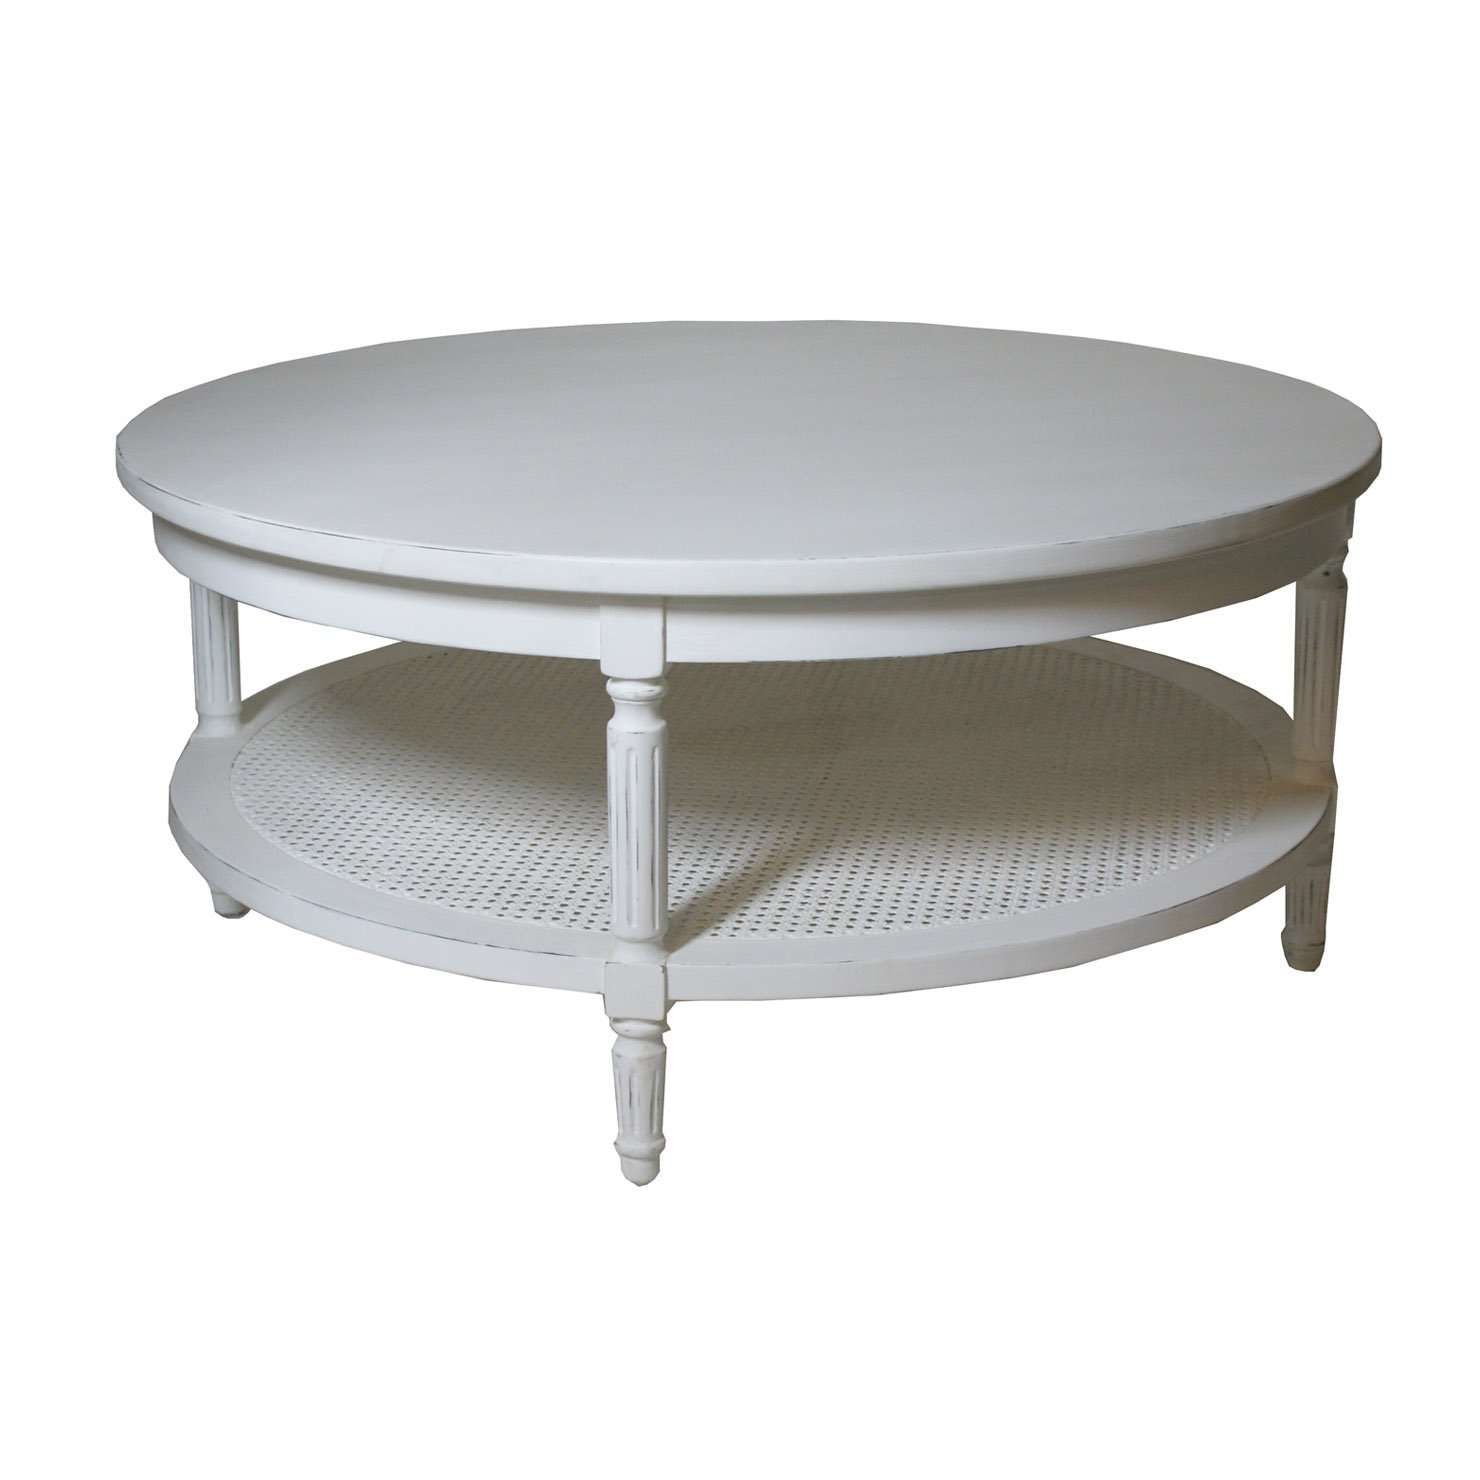 Round Coffee Table With Shelf White Vintage Round Wooden White Stained Coffee Table Furniture Round White Coffee Table Interior (Image 4 of 10)